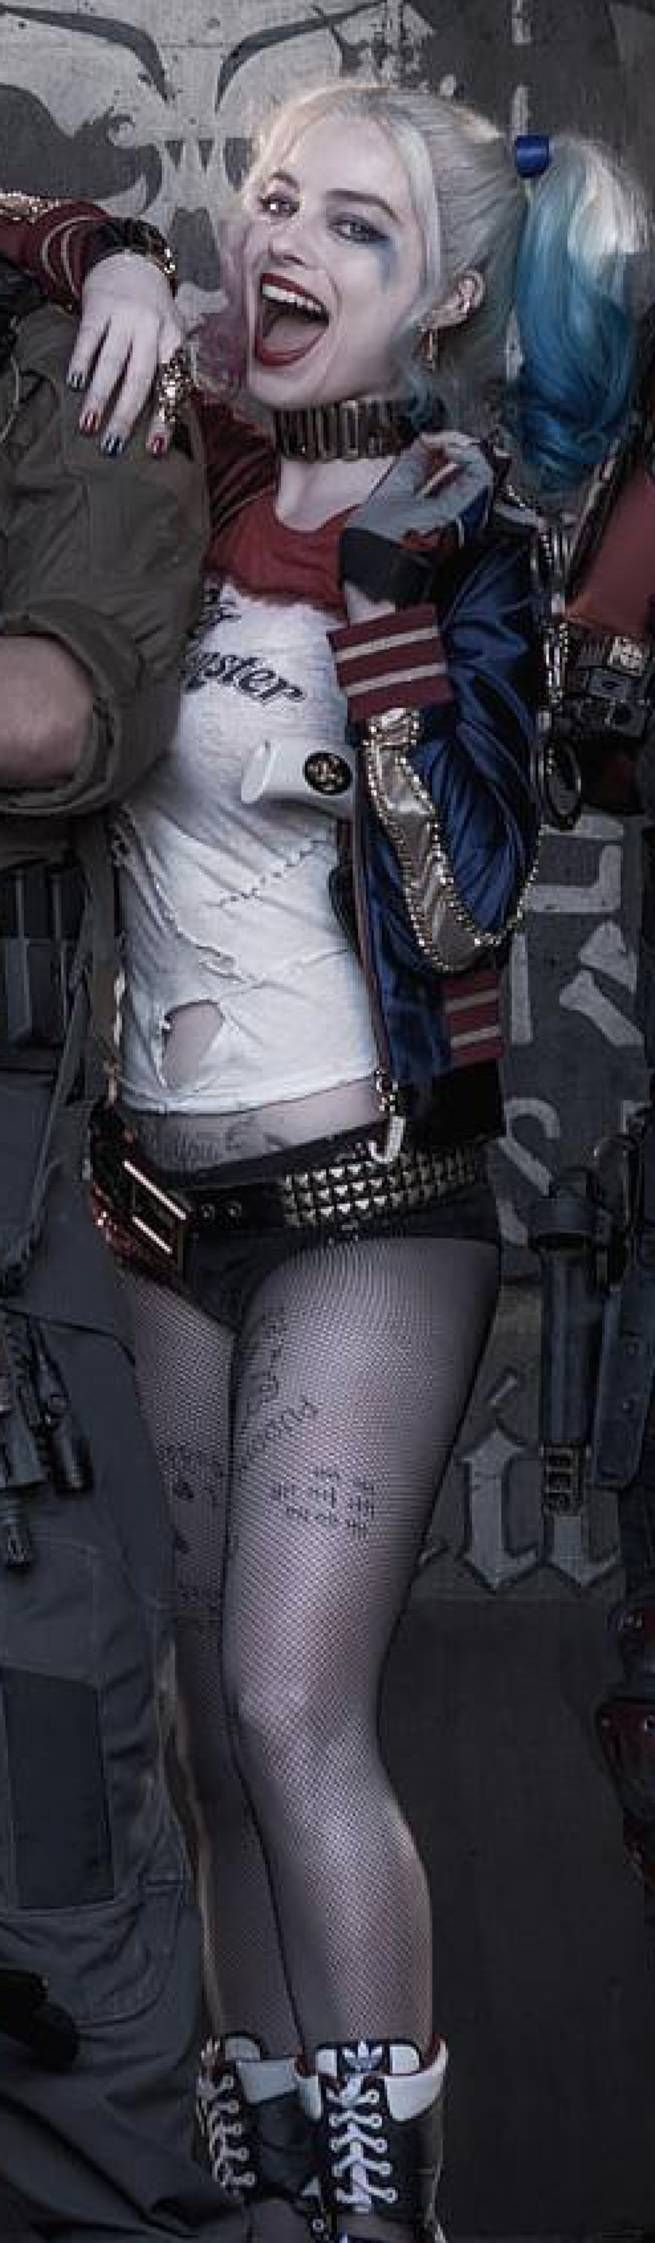 In-depth analysis of Harley's look.  Includes that puddin tattoo.